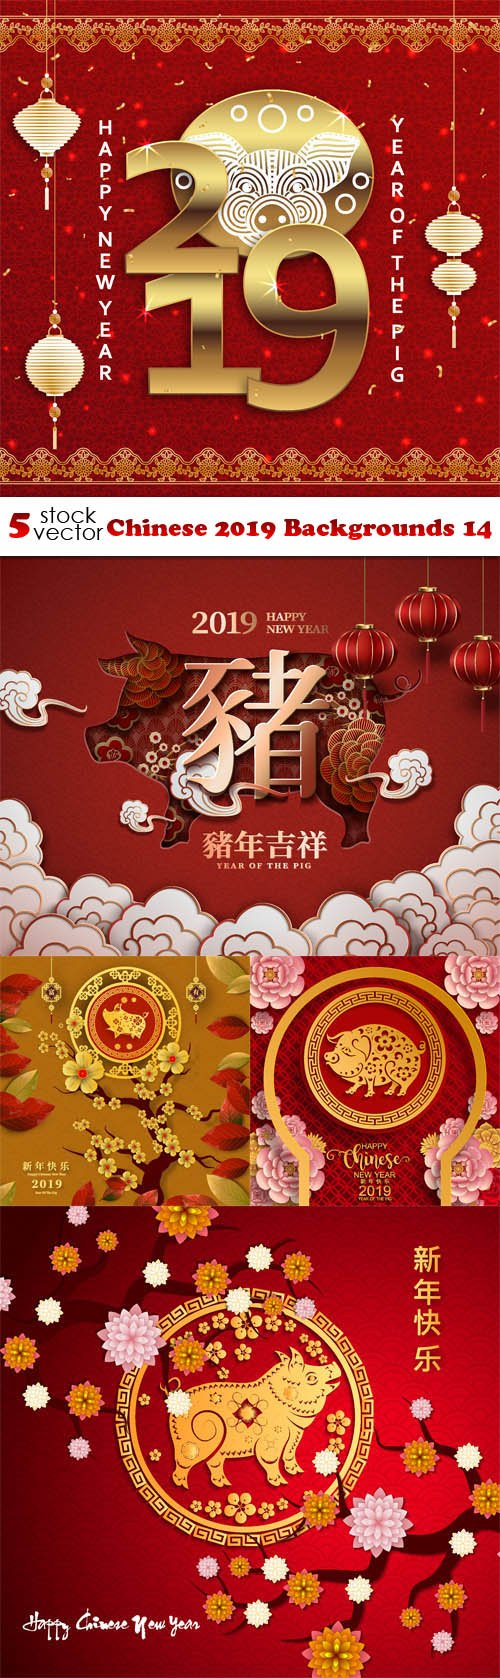 Vectors - Chinese 2019 Backgrounds 14